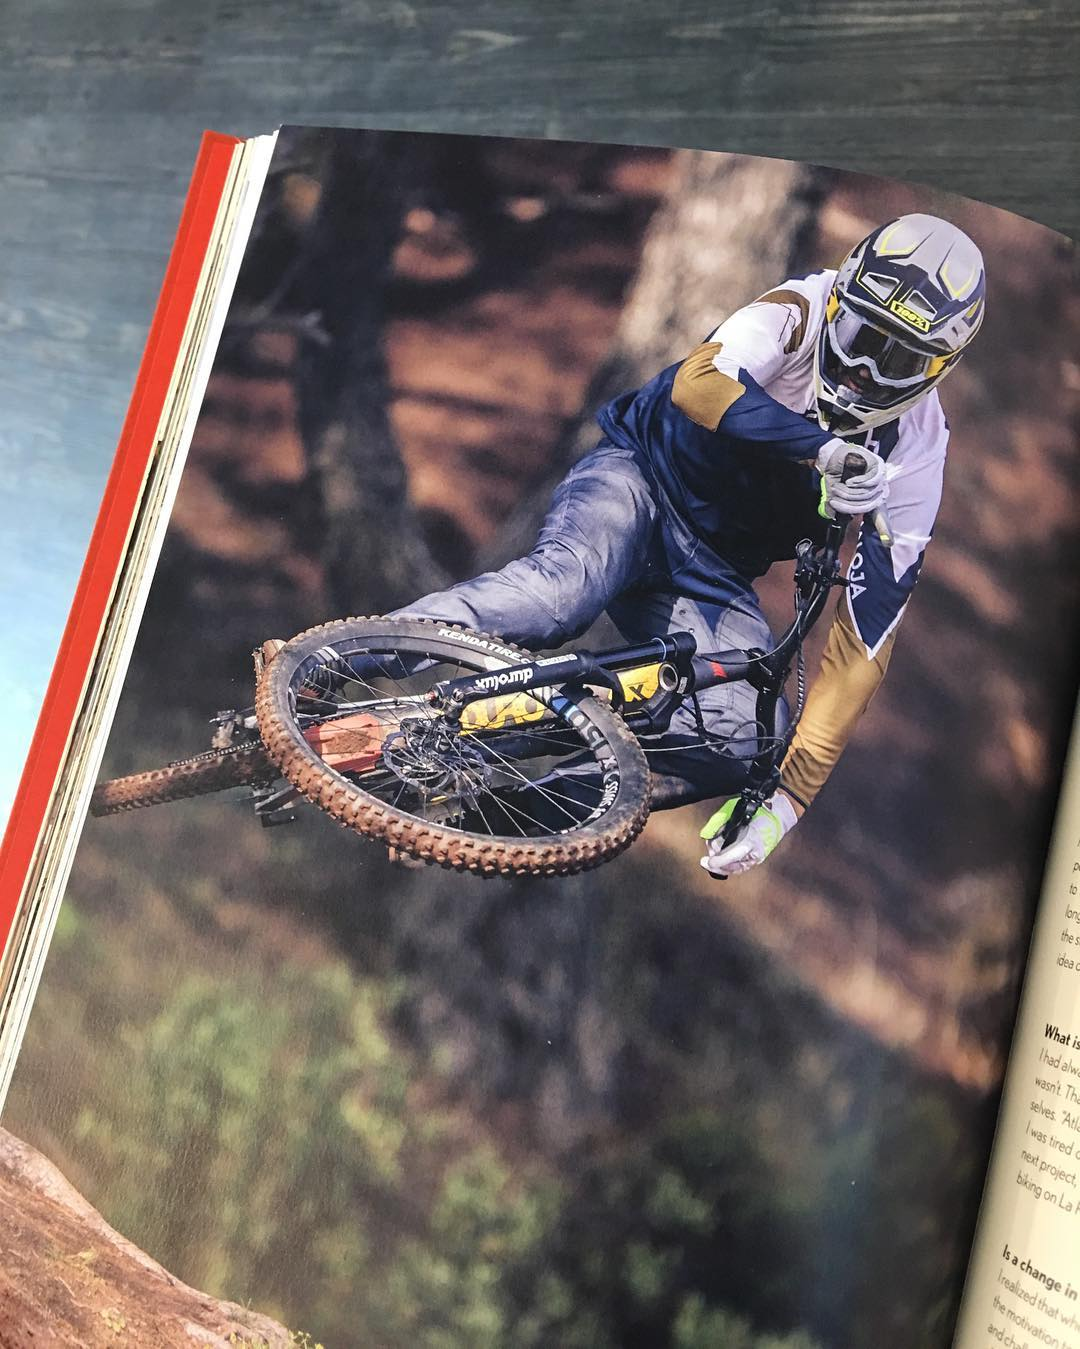 @tschugg23 looking steezy in the latest @malojaclothing catalog! #haibike #mtb #emtb #ebike #ride100percent #durolux #nduro #enduro